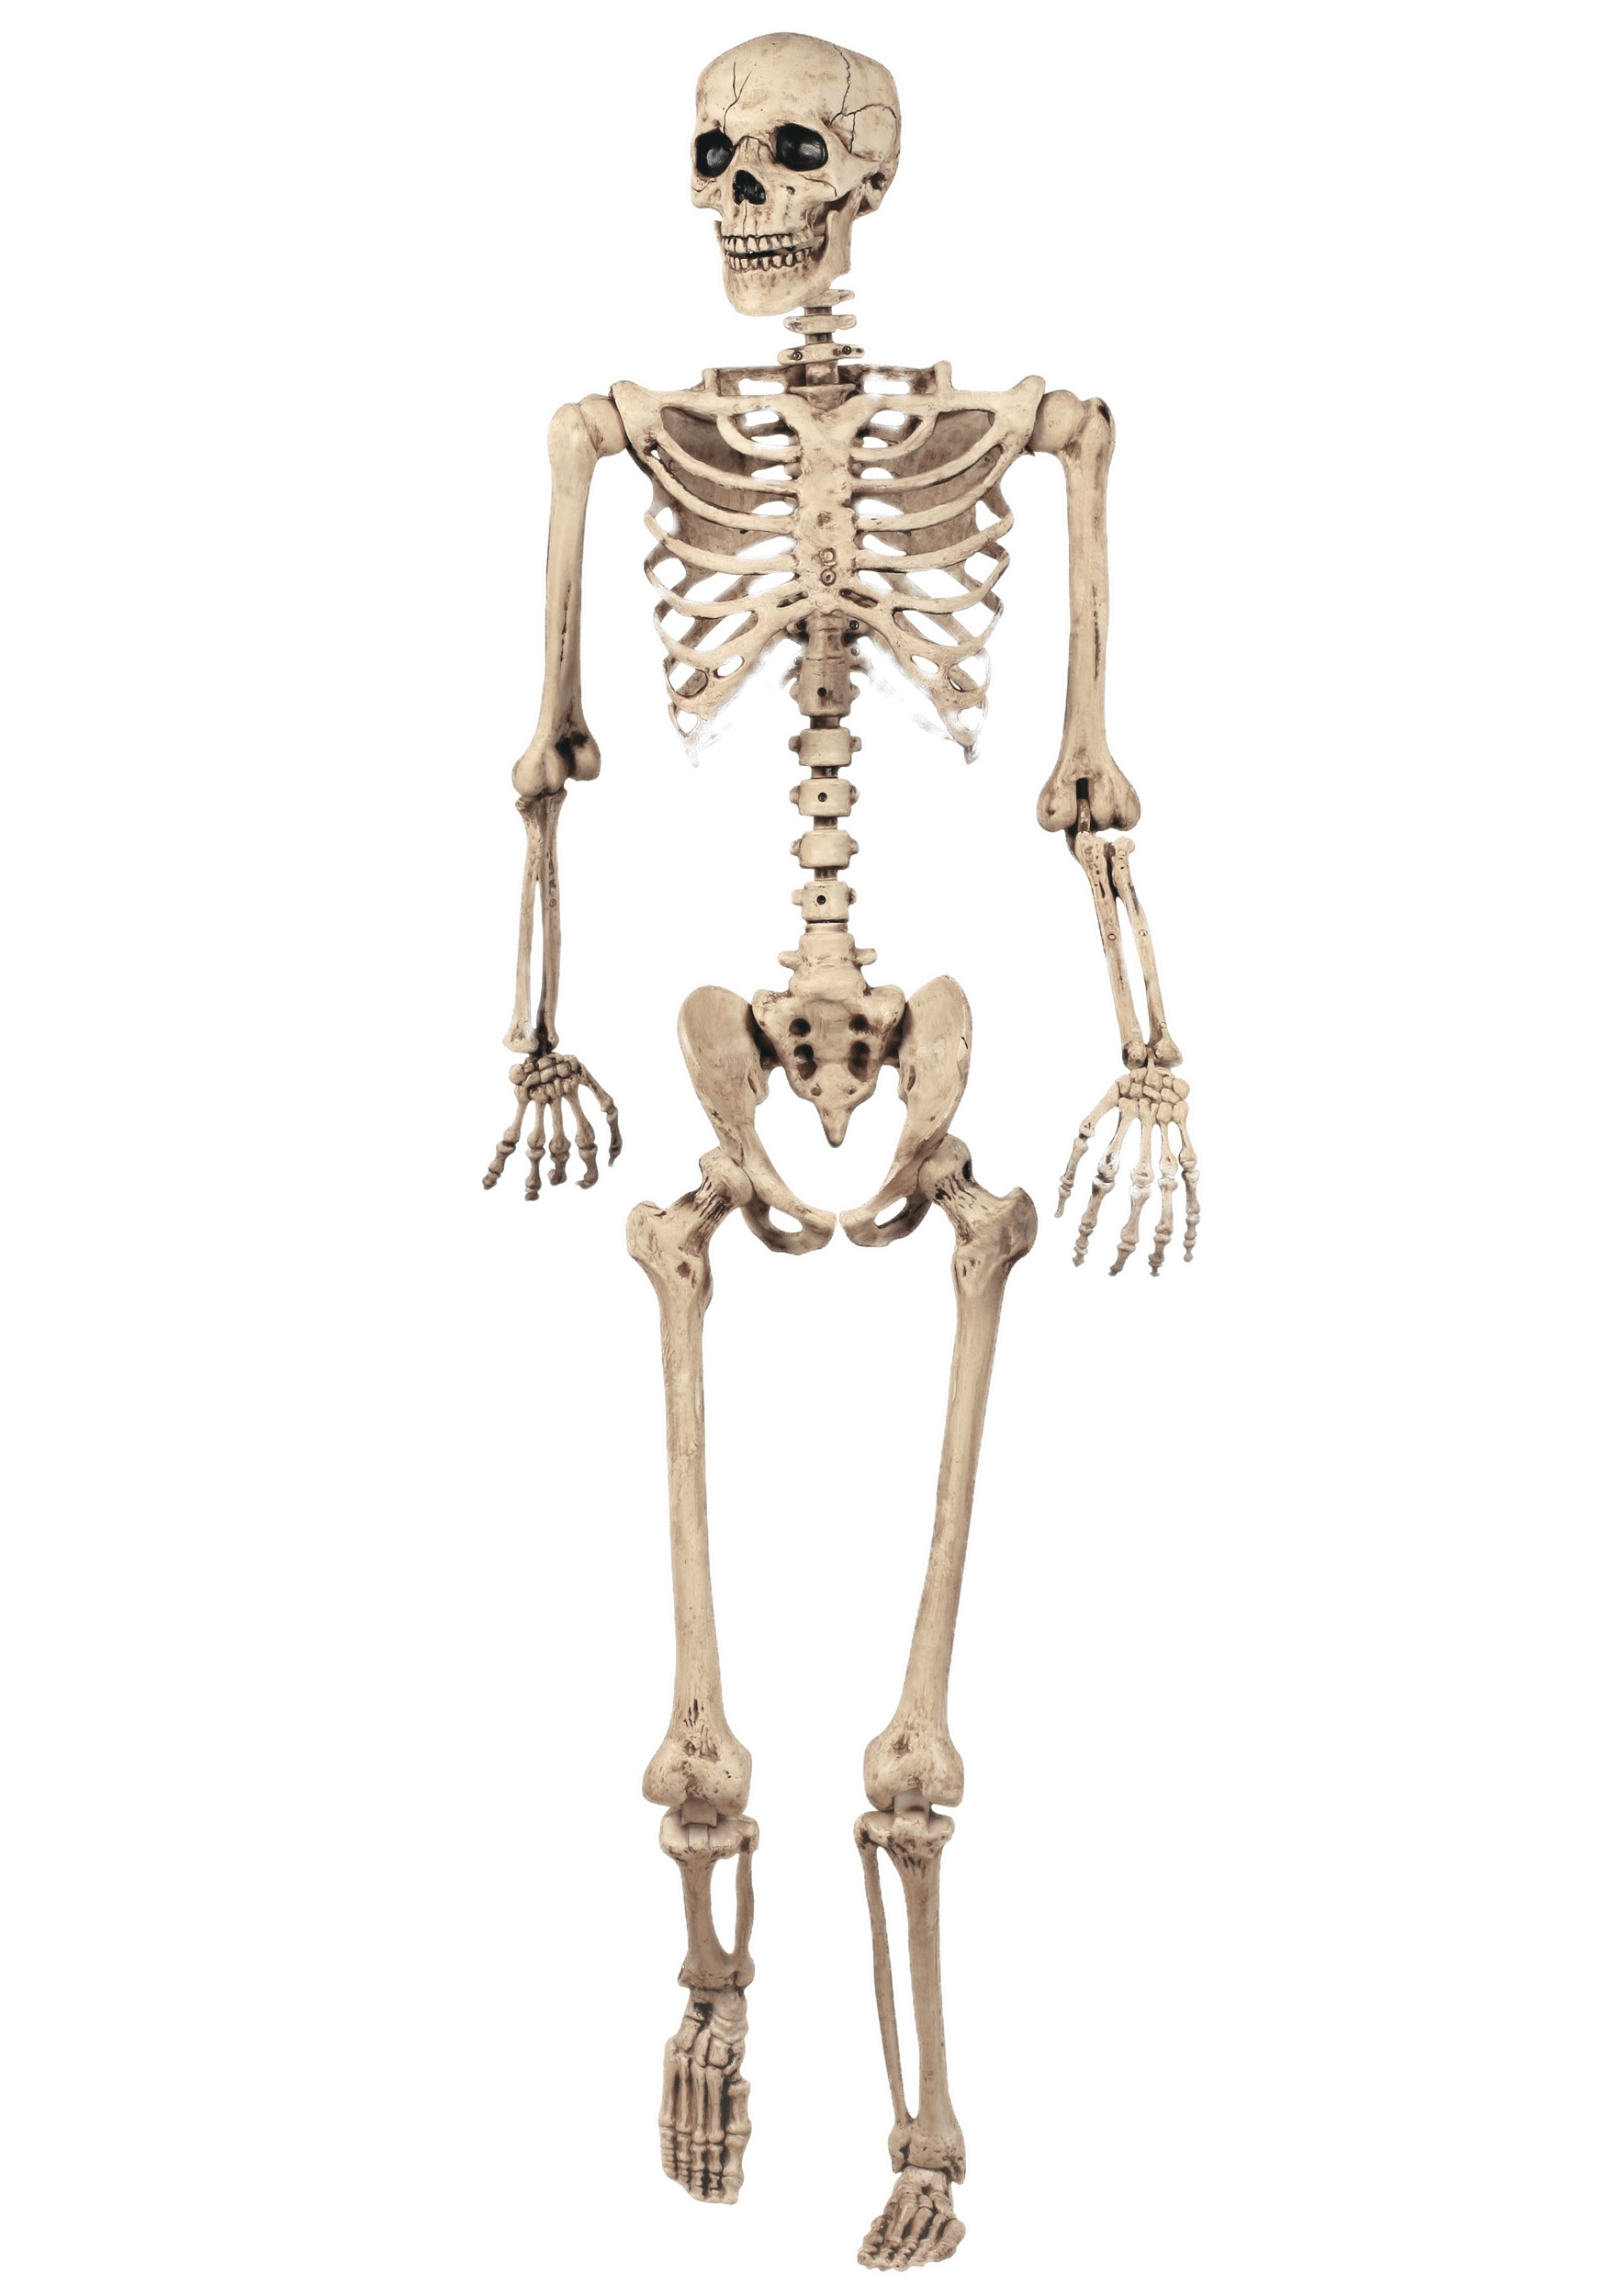 Human bone png. Full skeleton model transparent